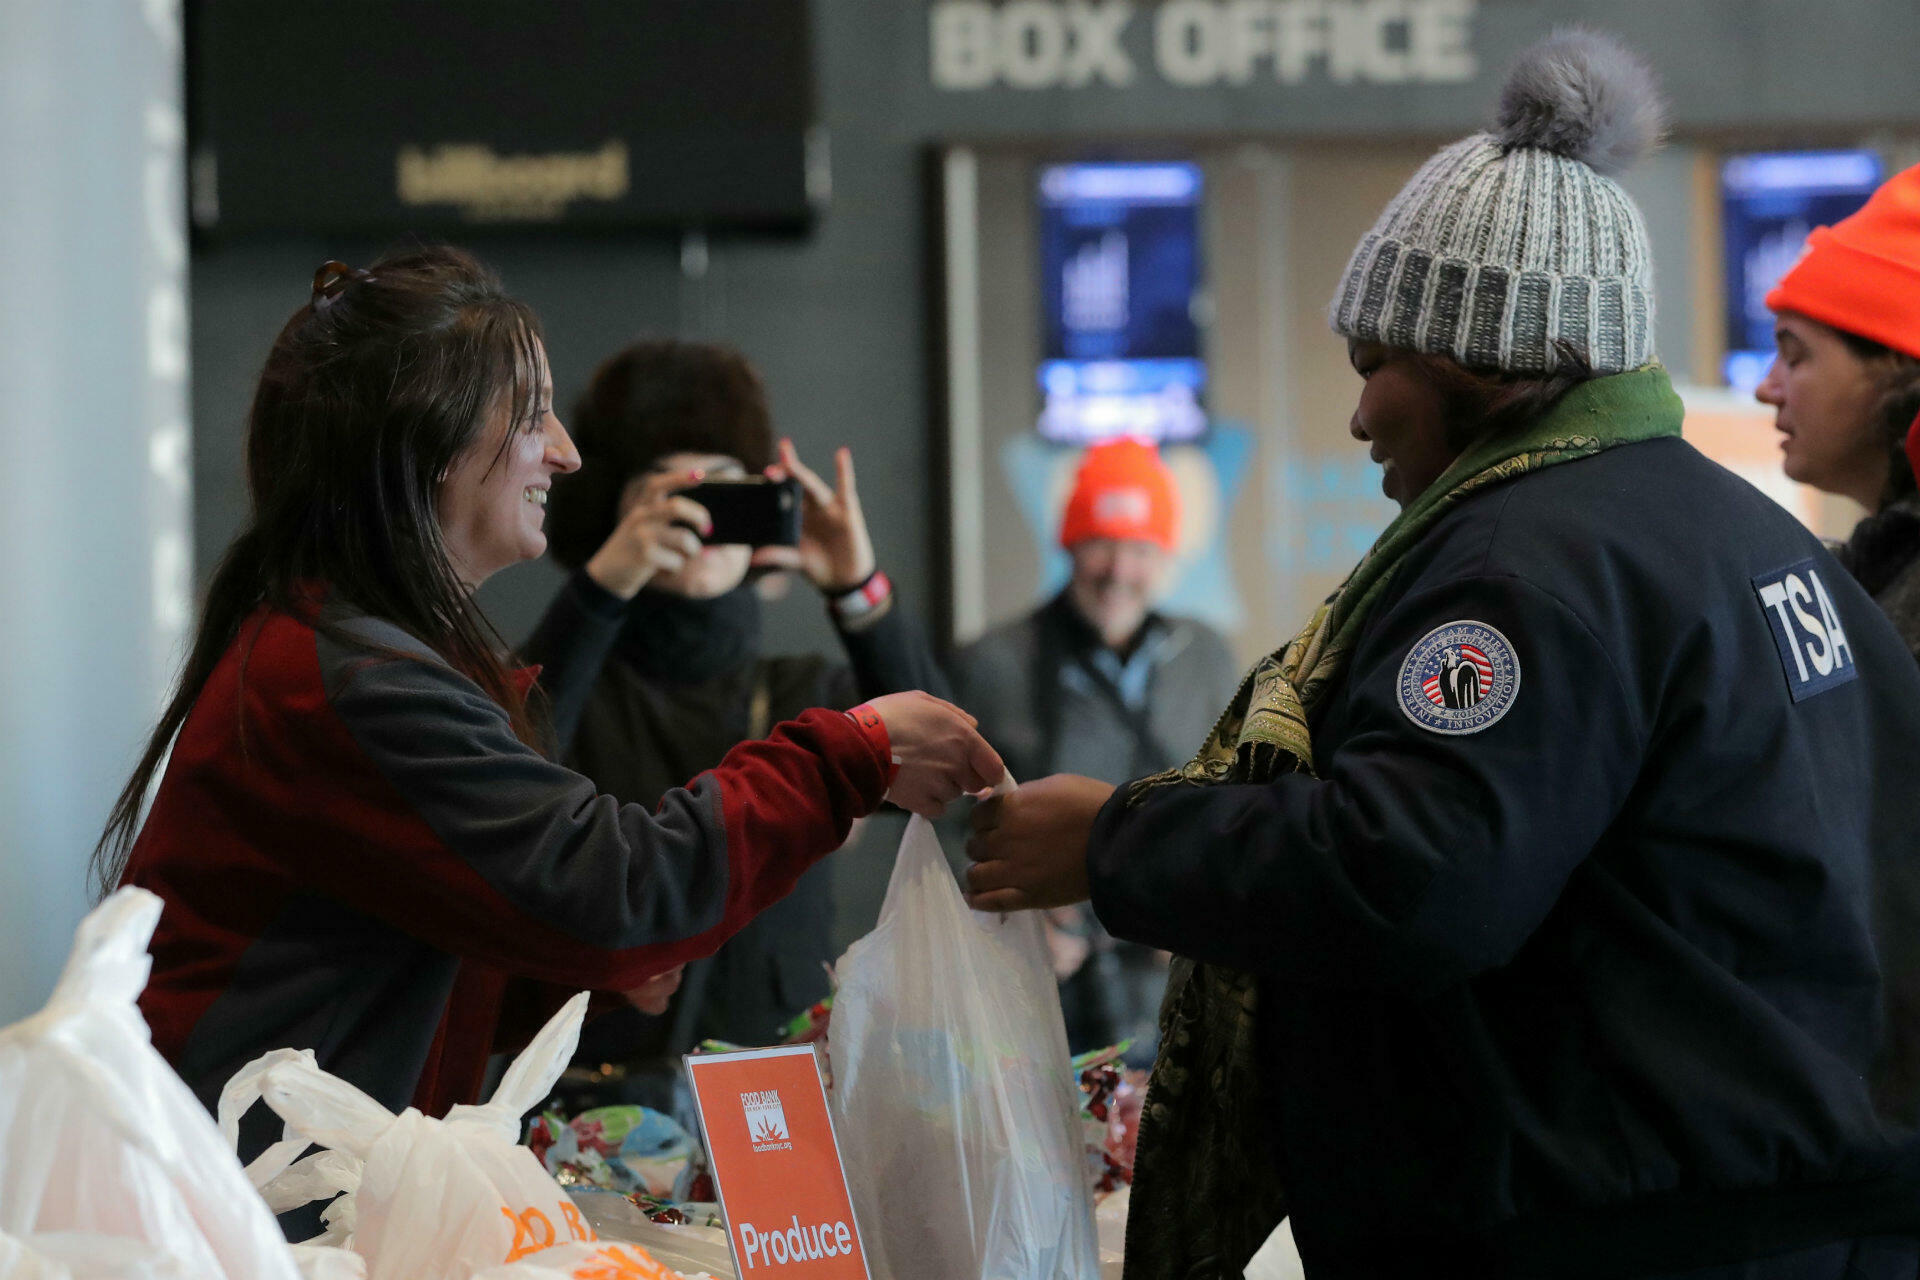 A Transportation Security Administration (TSA) employee receives a donation at a food distribution centre for federal workers impacted by the shutdown, at the Barclays Center in Brooklyn, on January 22, 2019. More than 50,000 TSA officers are working without pay. The agency said on Monday that unscheduled absences among US airport security officers rose to a record 10 percent on Sunday.